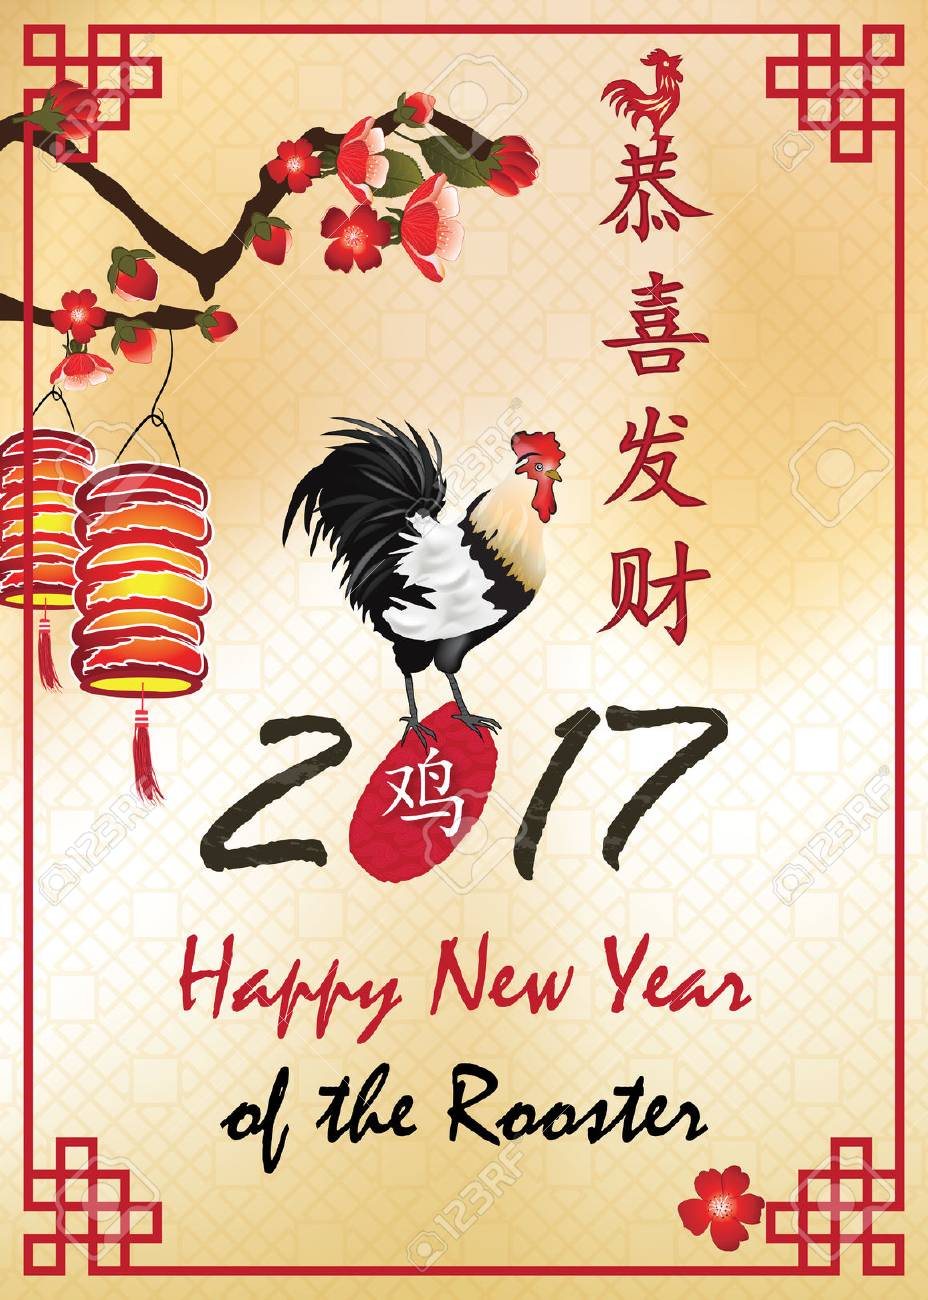 chinese new year of the rooster 2017 greeting card chinese text translation